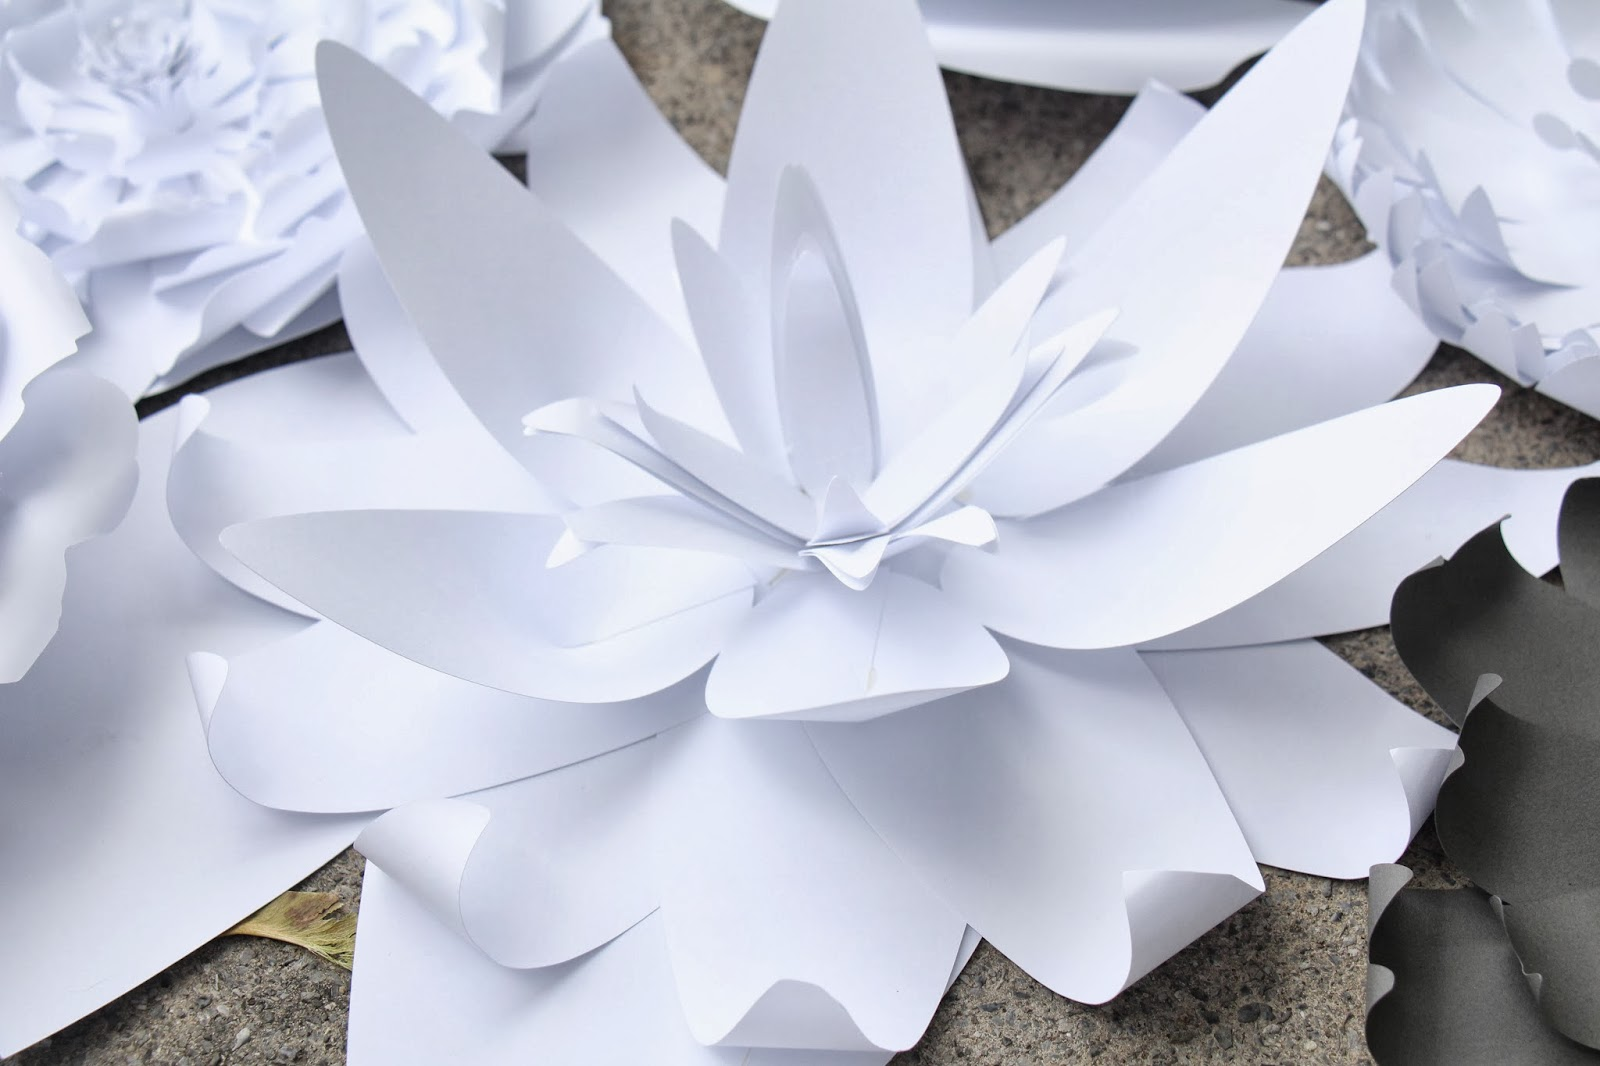 Grosgrain Paper Flower Wall With Silhouette Patterns